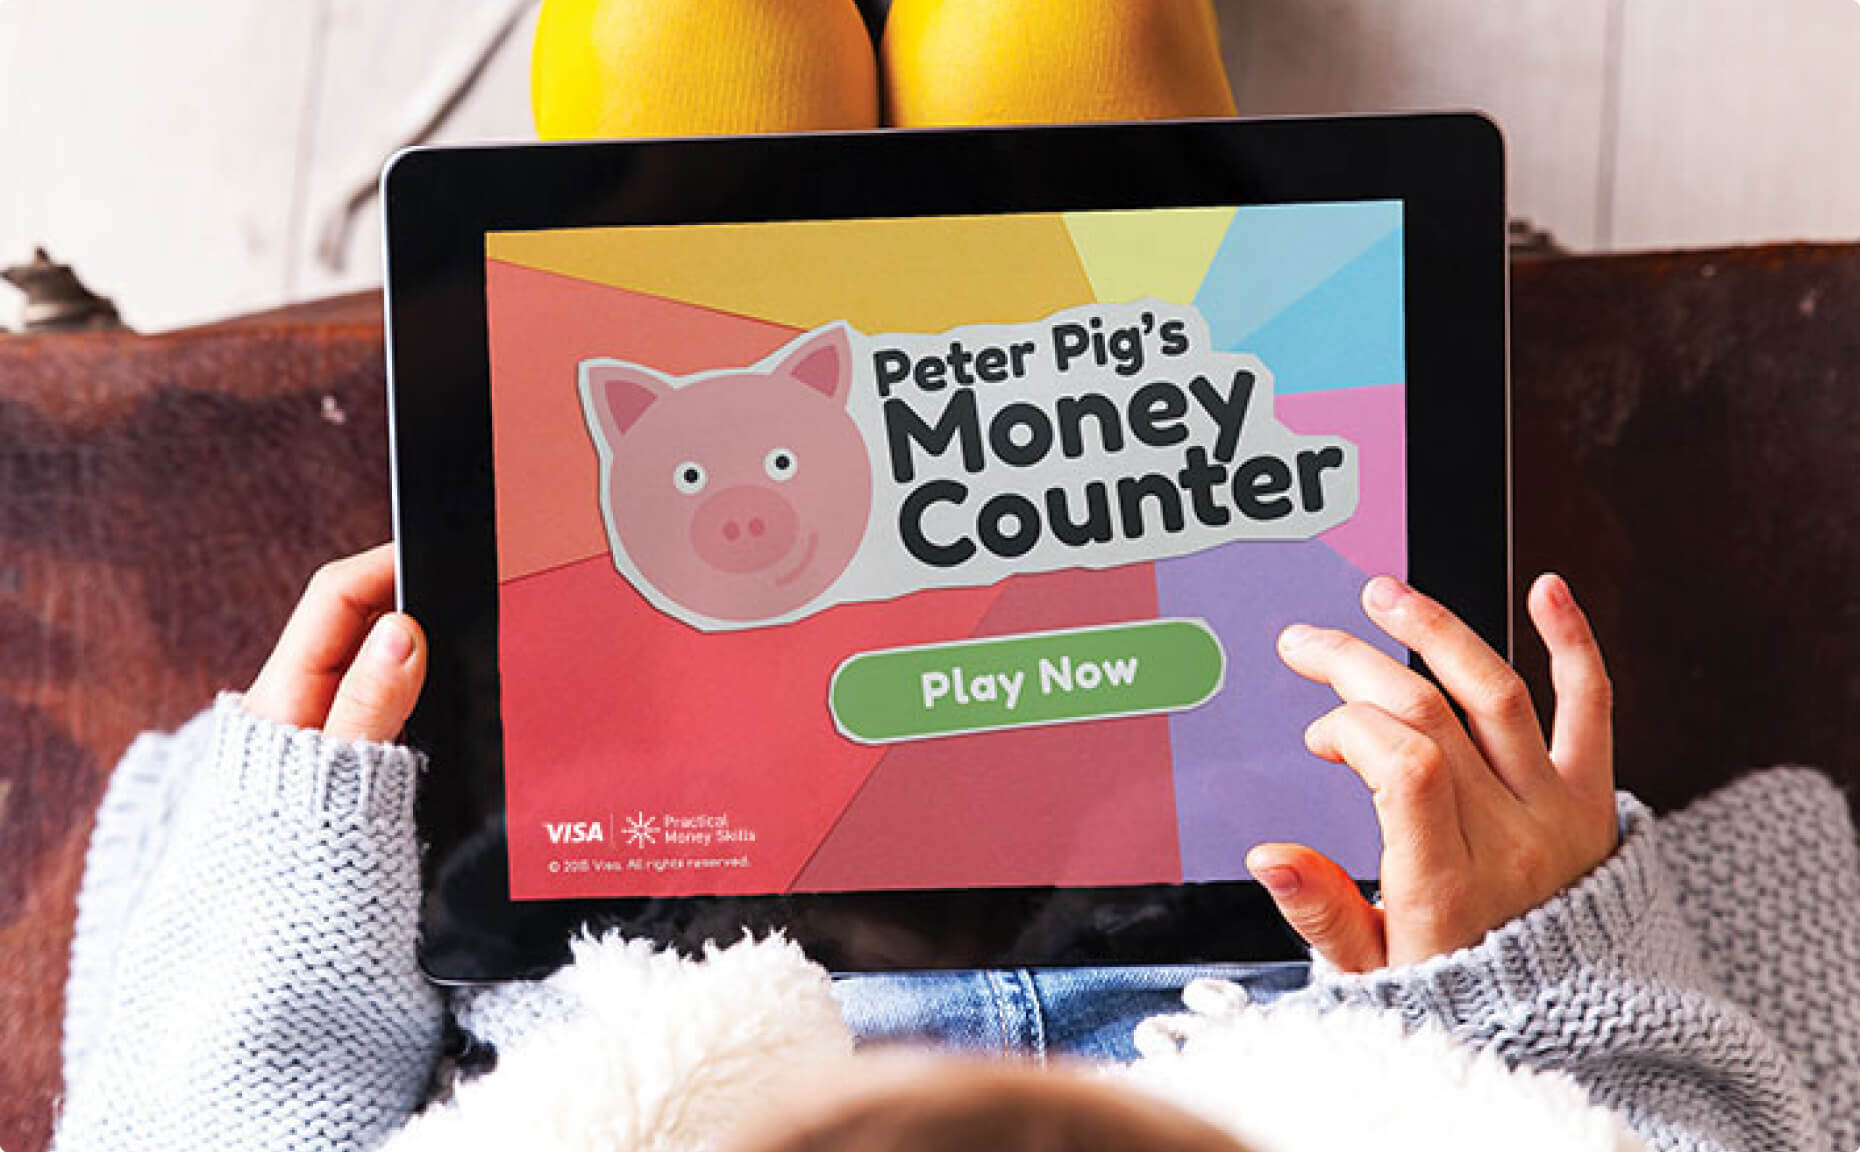 A small child plays the Peter Pig's Money Counter game on a tablet device.